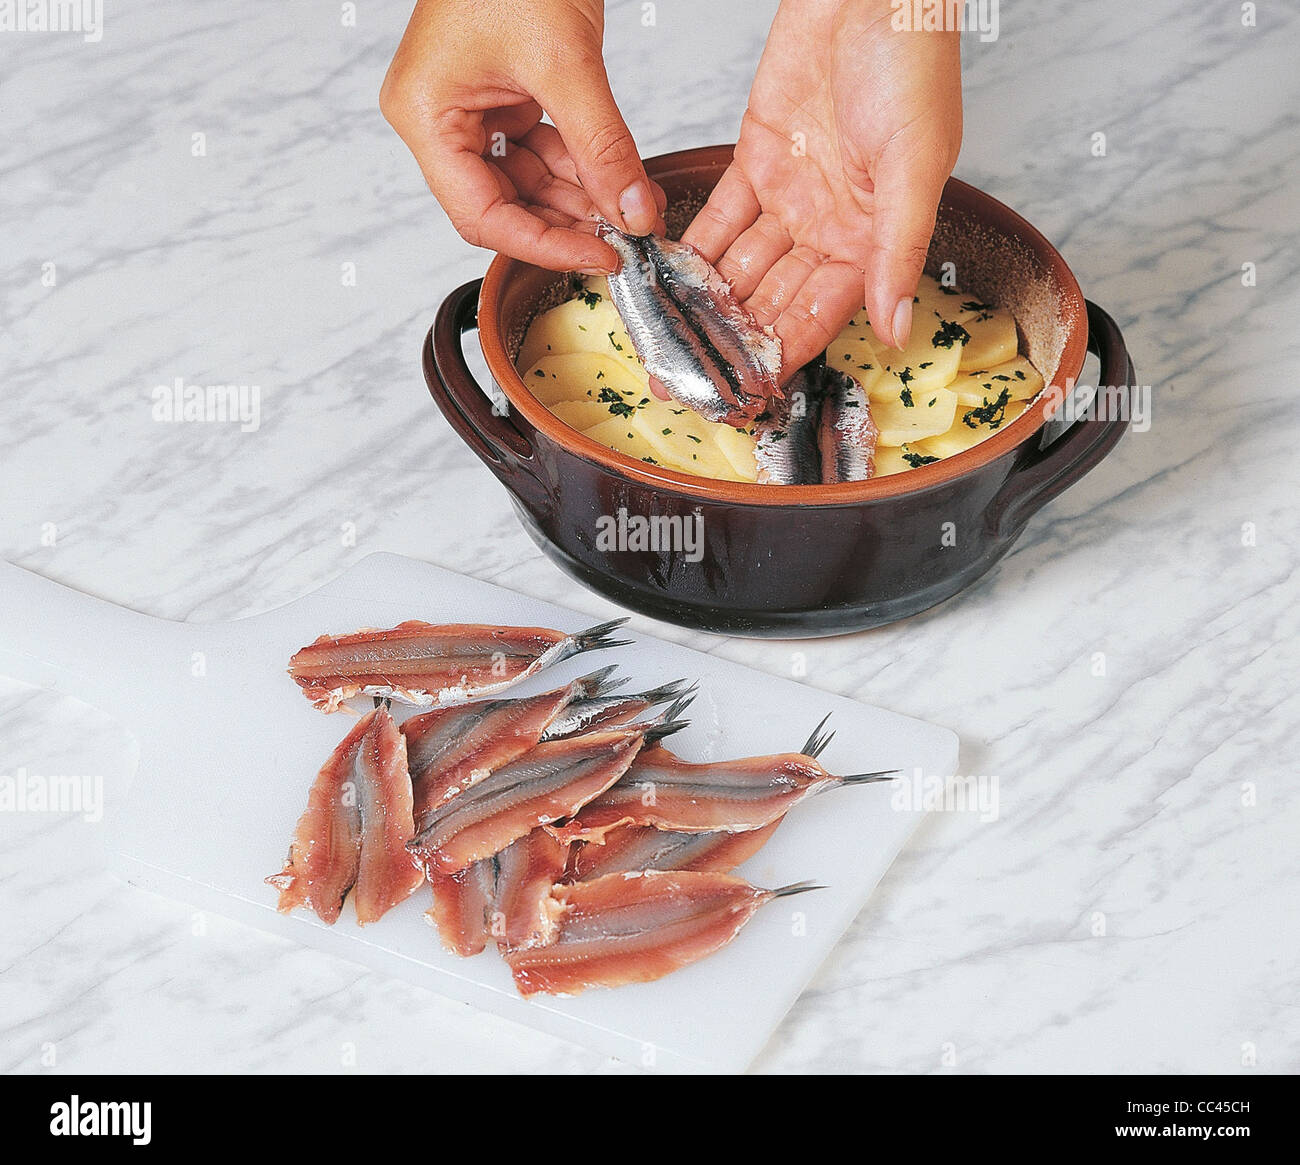 Search Results For Oven Baked Sardines 2 Stock Photos And Images